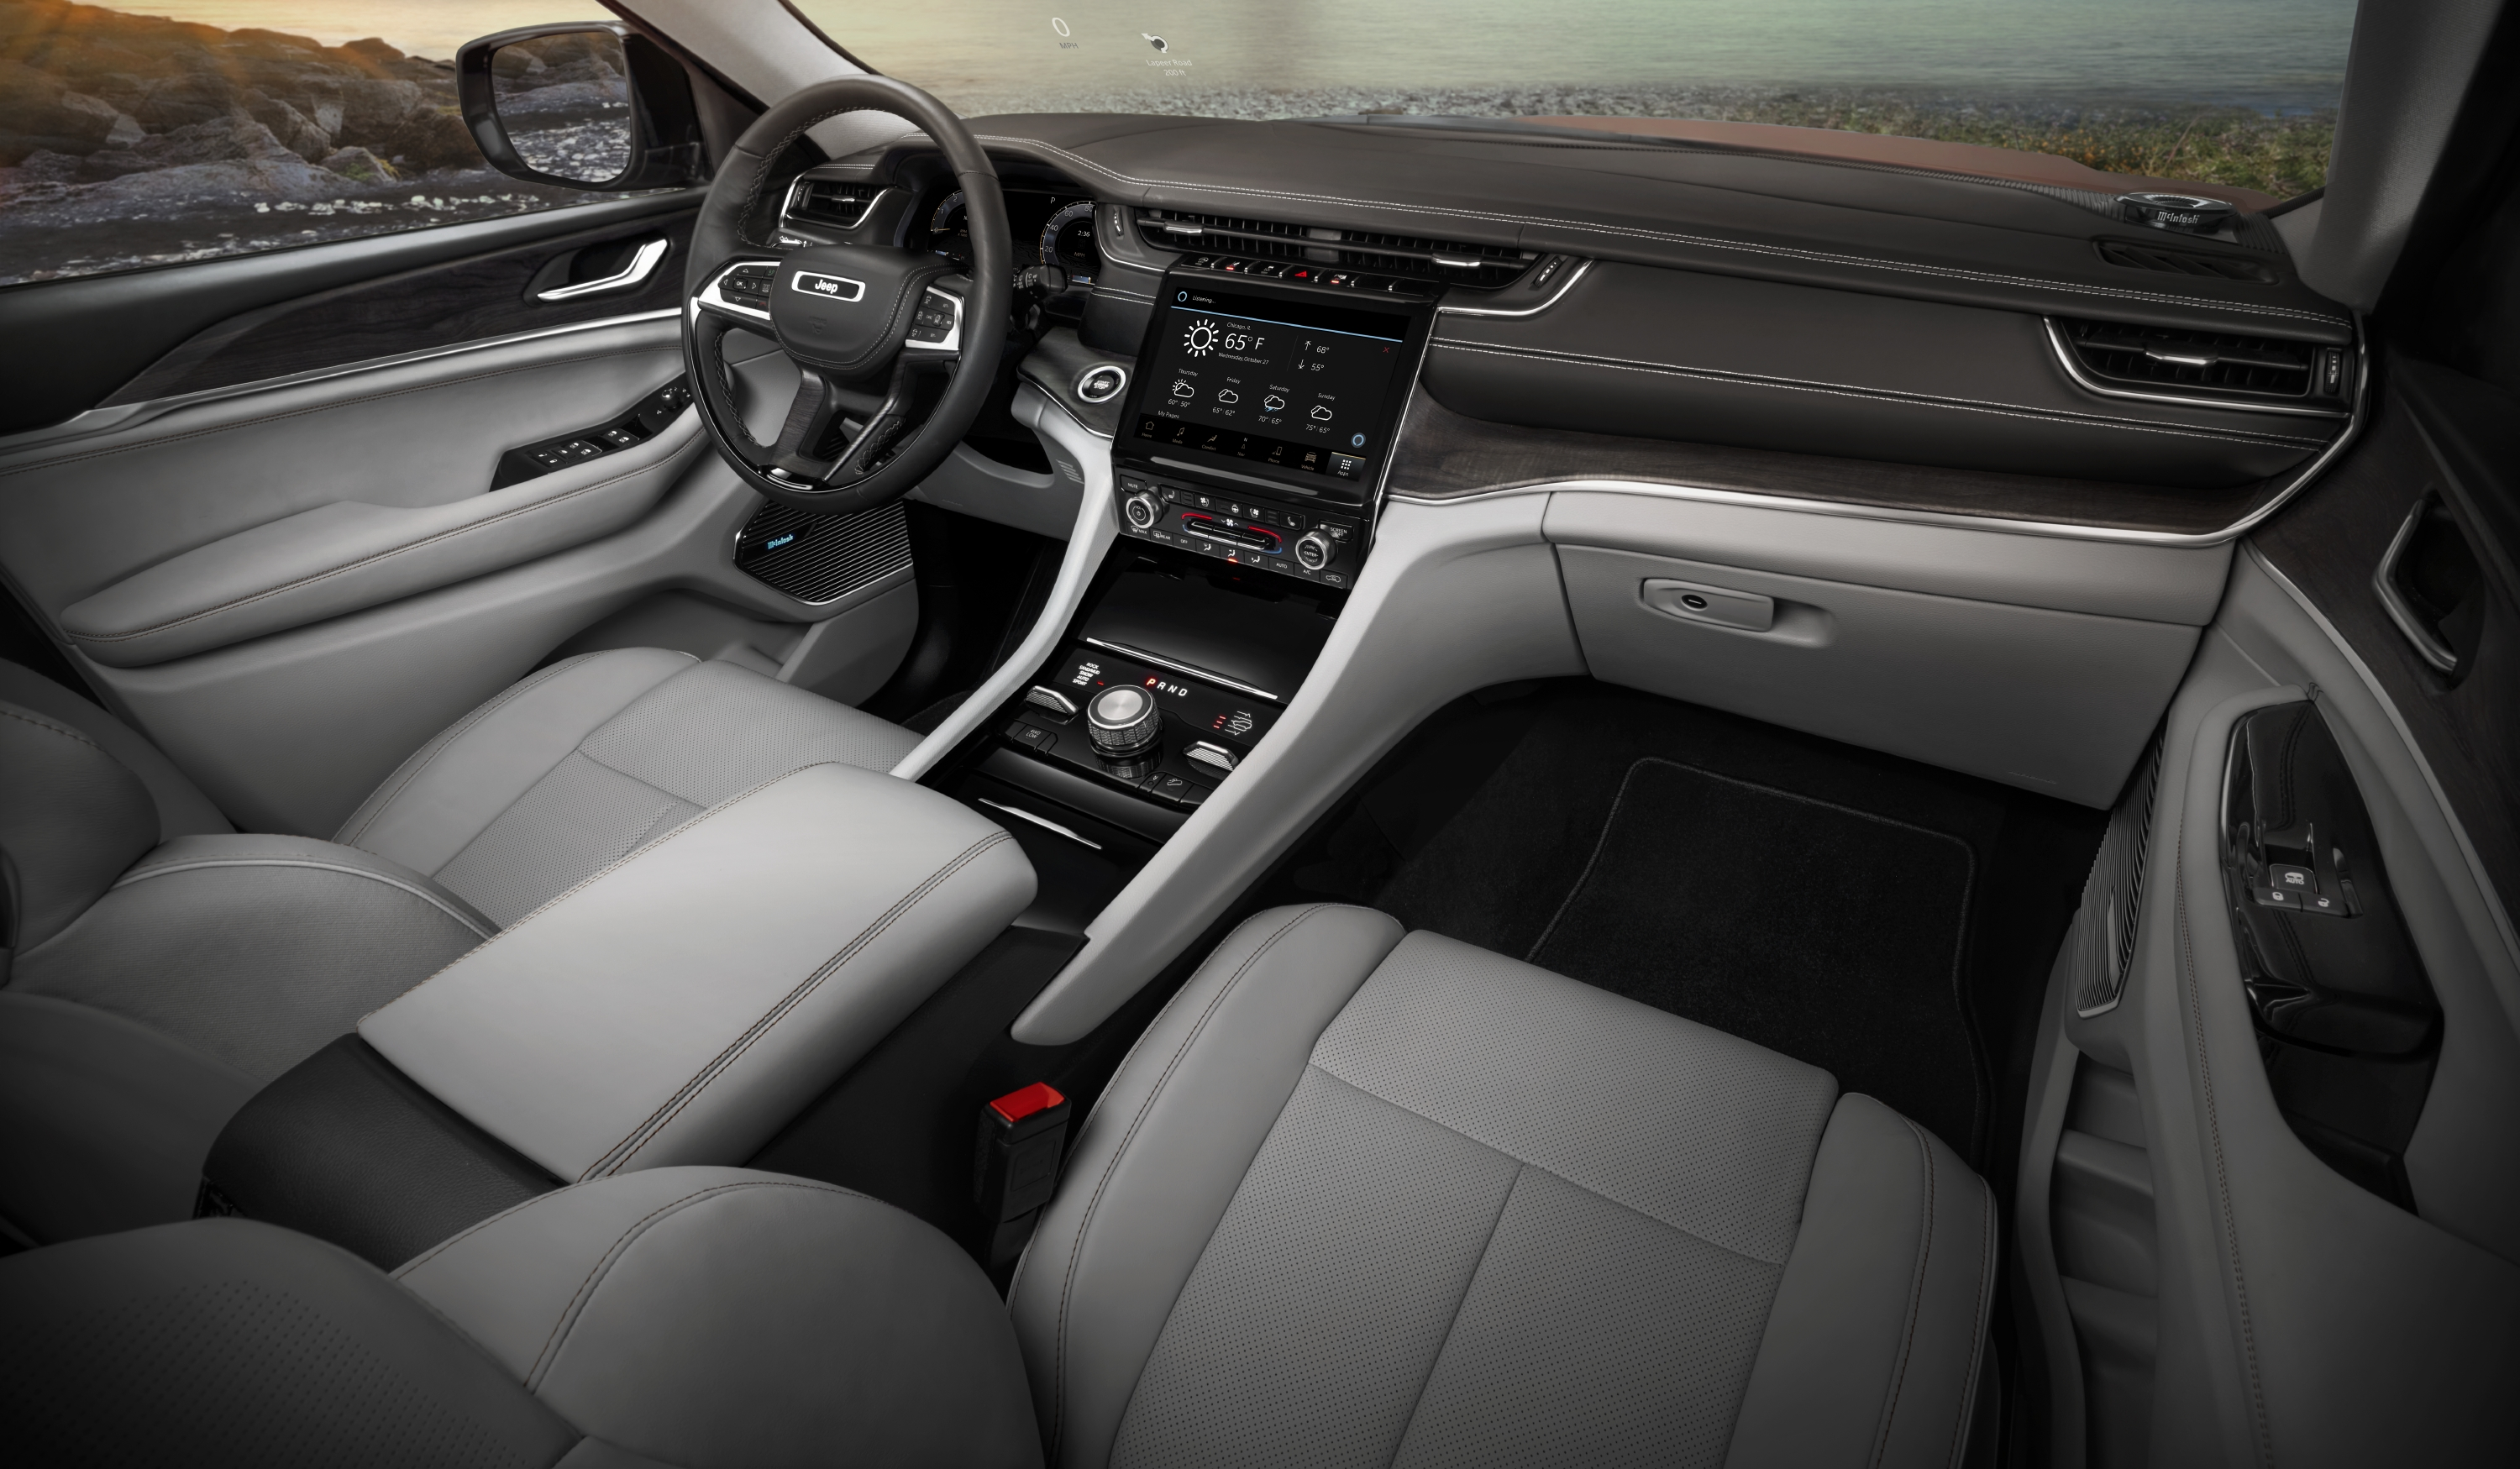 Jeep Grand Cherokee L Overland interior.jpg